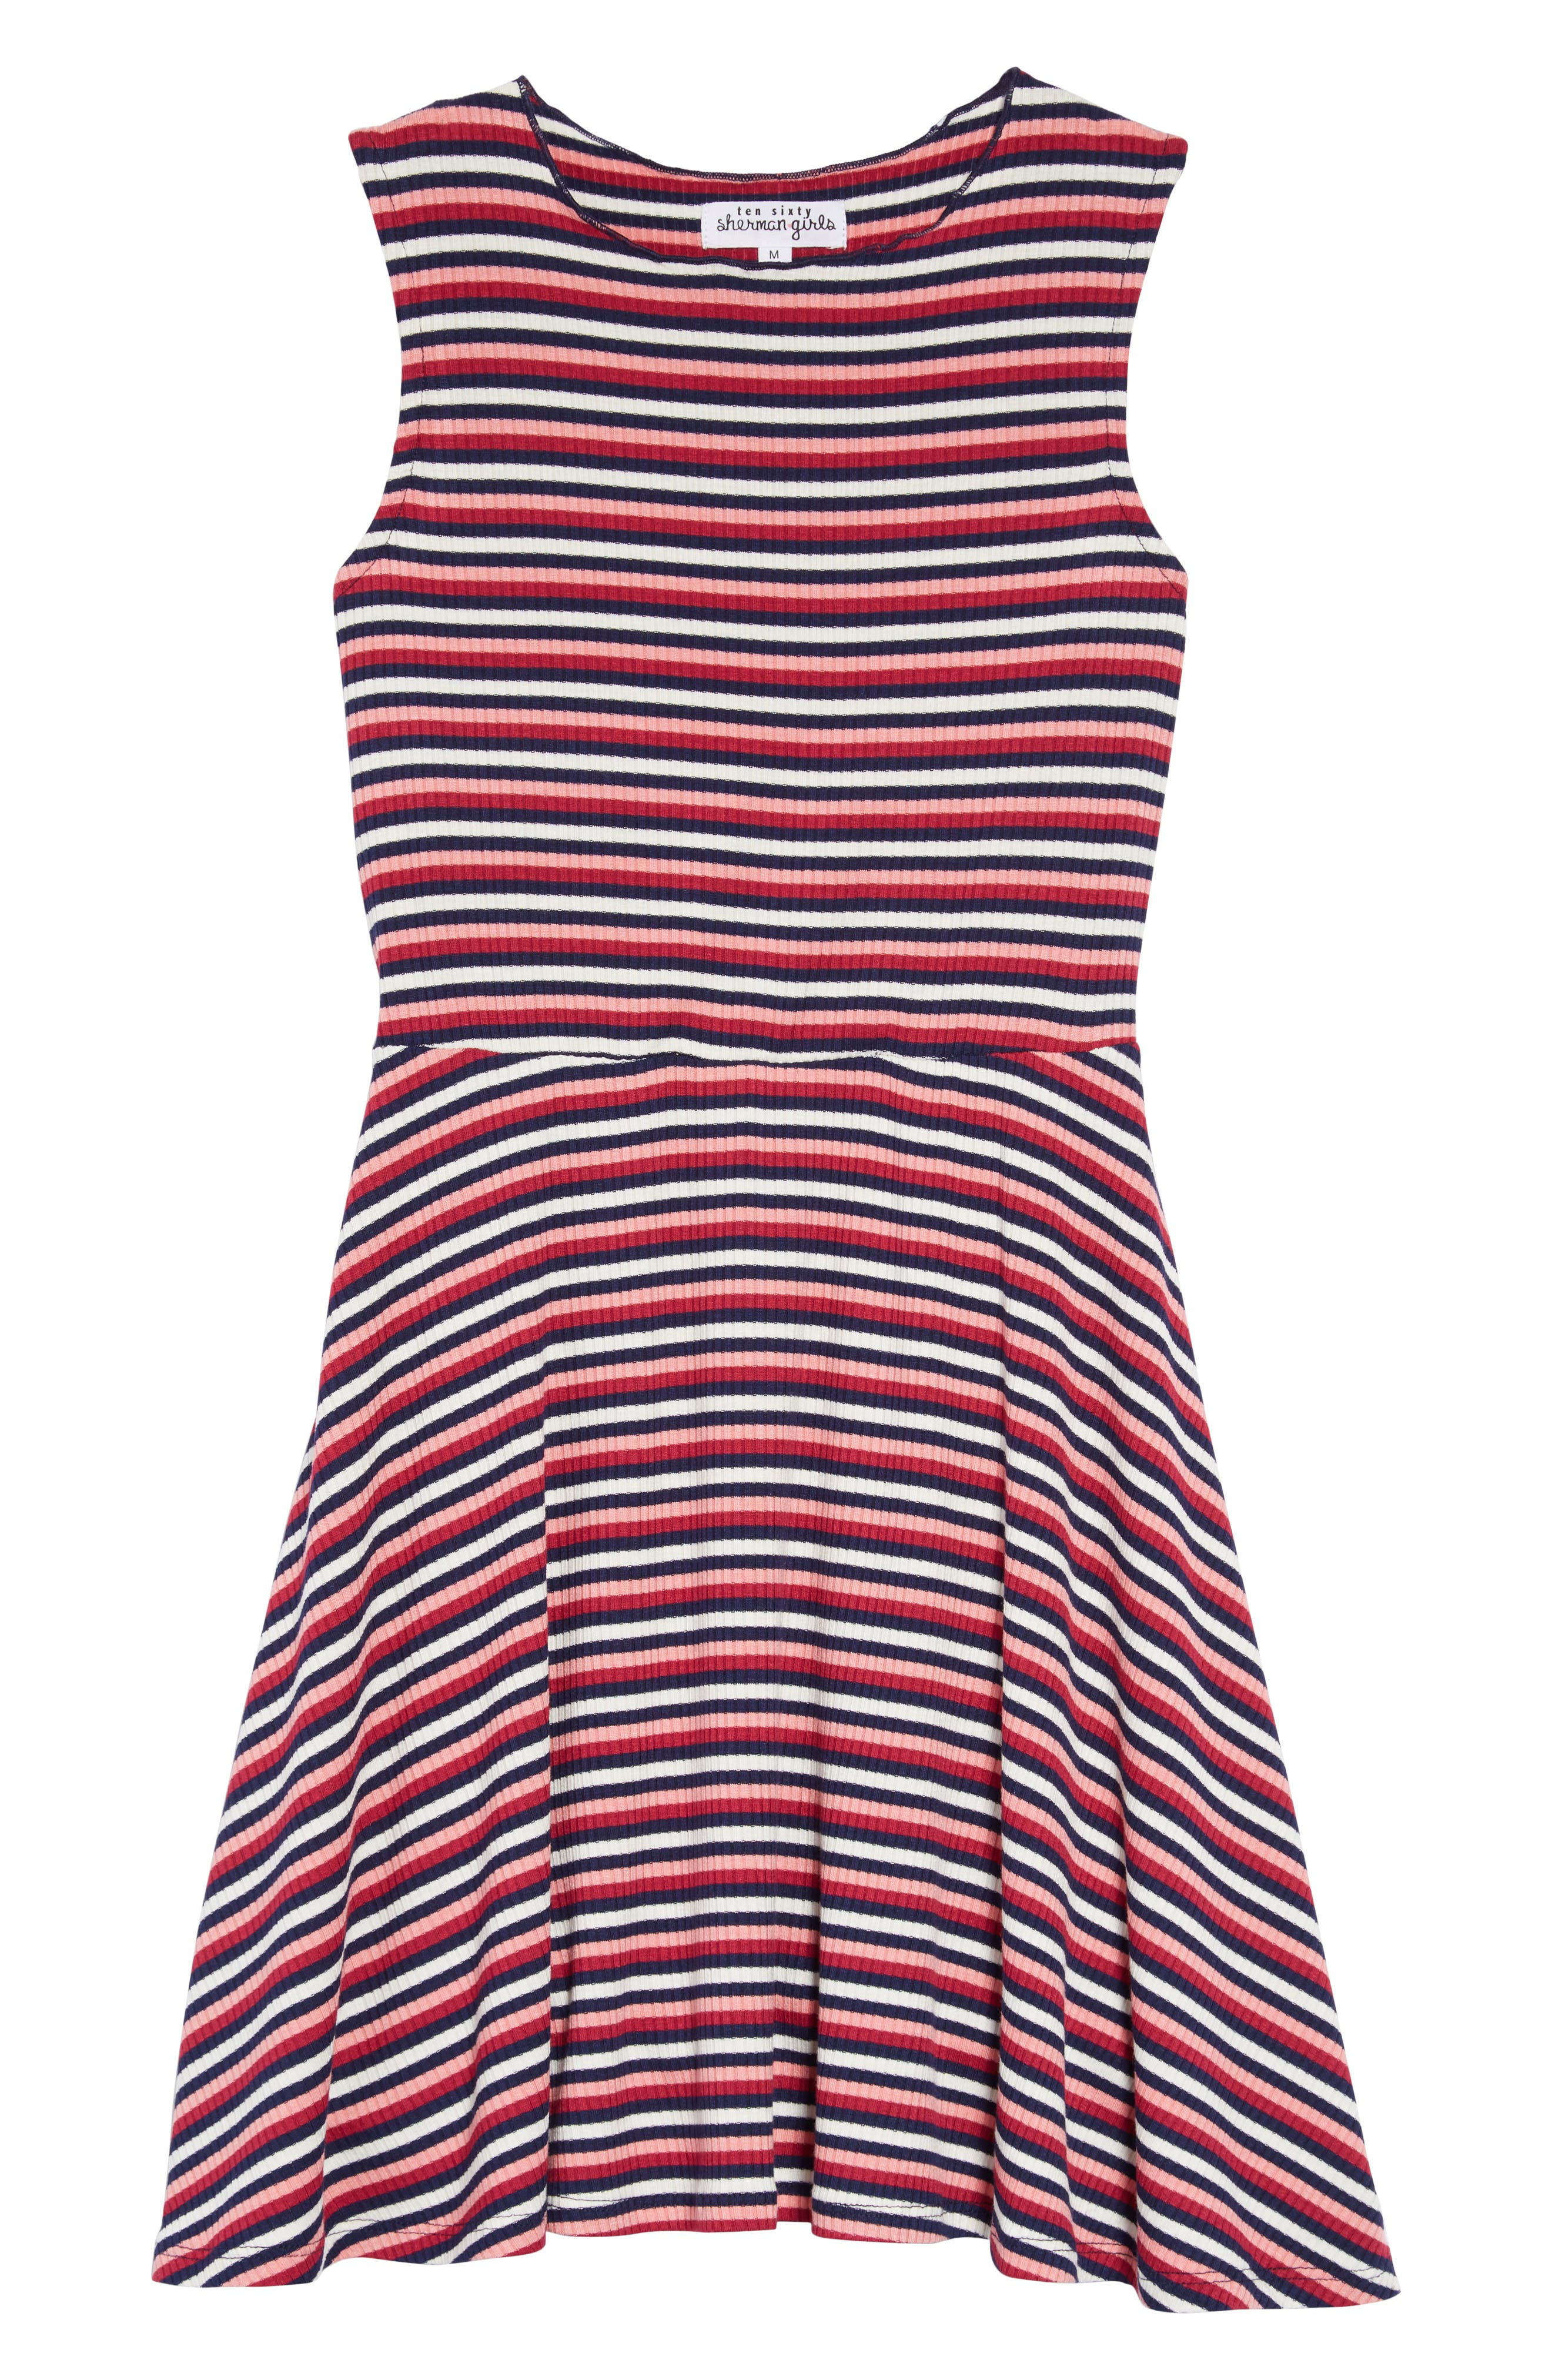 TEN SIXTY SHERMAN,                             Stripe Dress,                             Main thumbnail 1, color,                             WHITE RASPBERRY